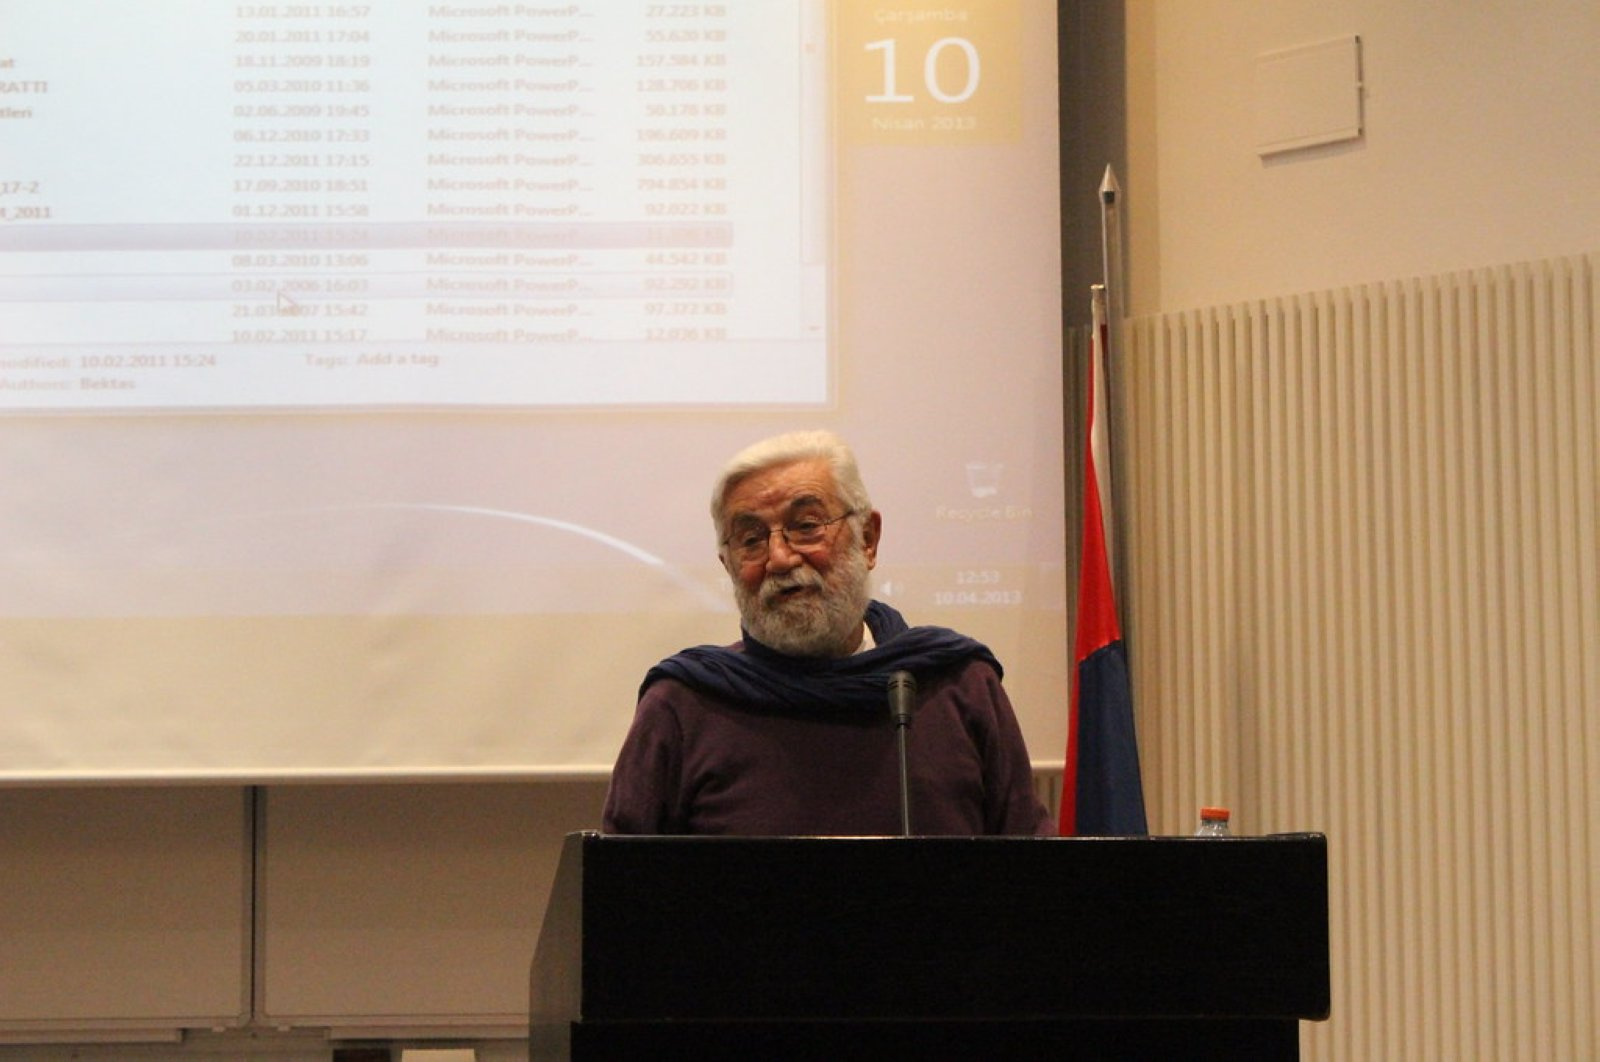 Cengiz Bektaş lectured on the traditional Turkish housing since the early 1970s.